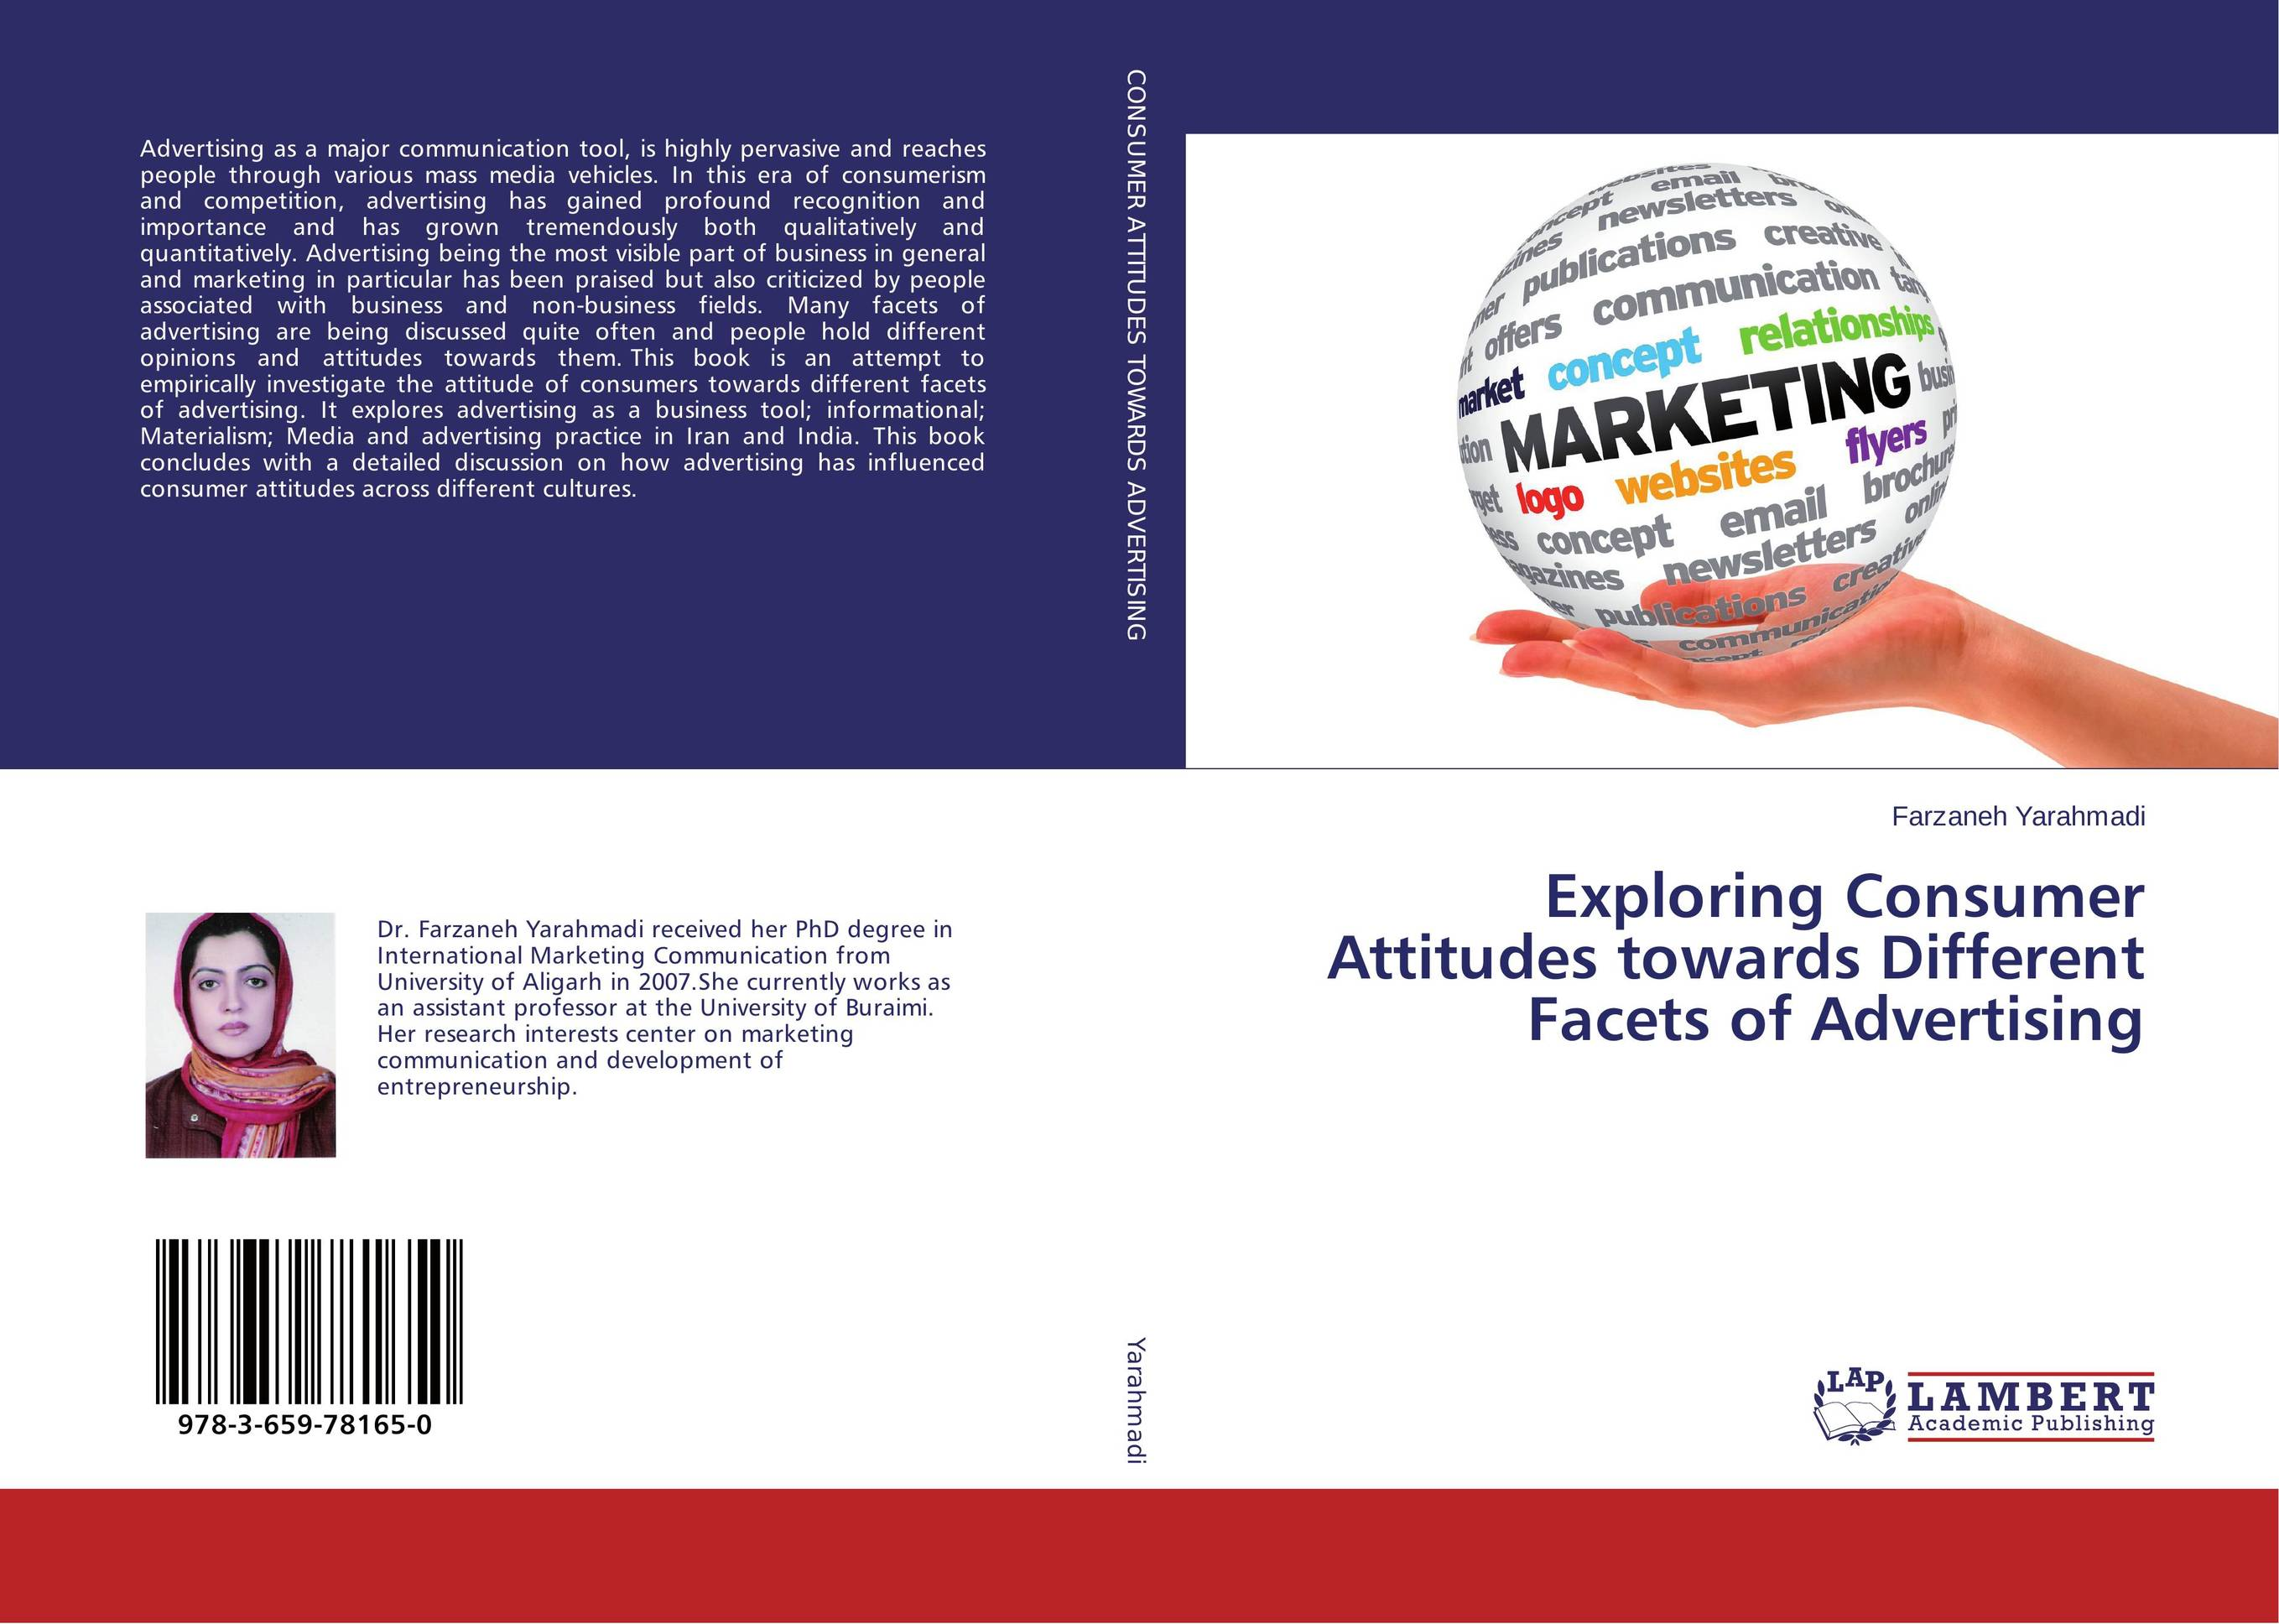 Exploring Consumer Attitudes towards Different Facets of Advertising david booth display advertising an hour a day